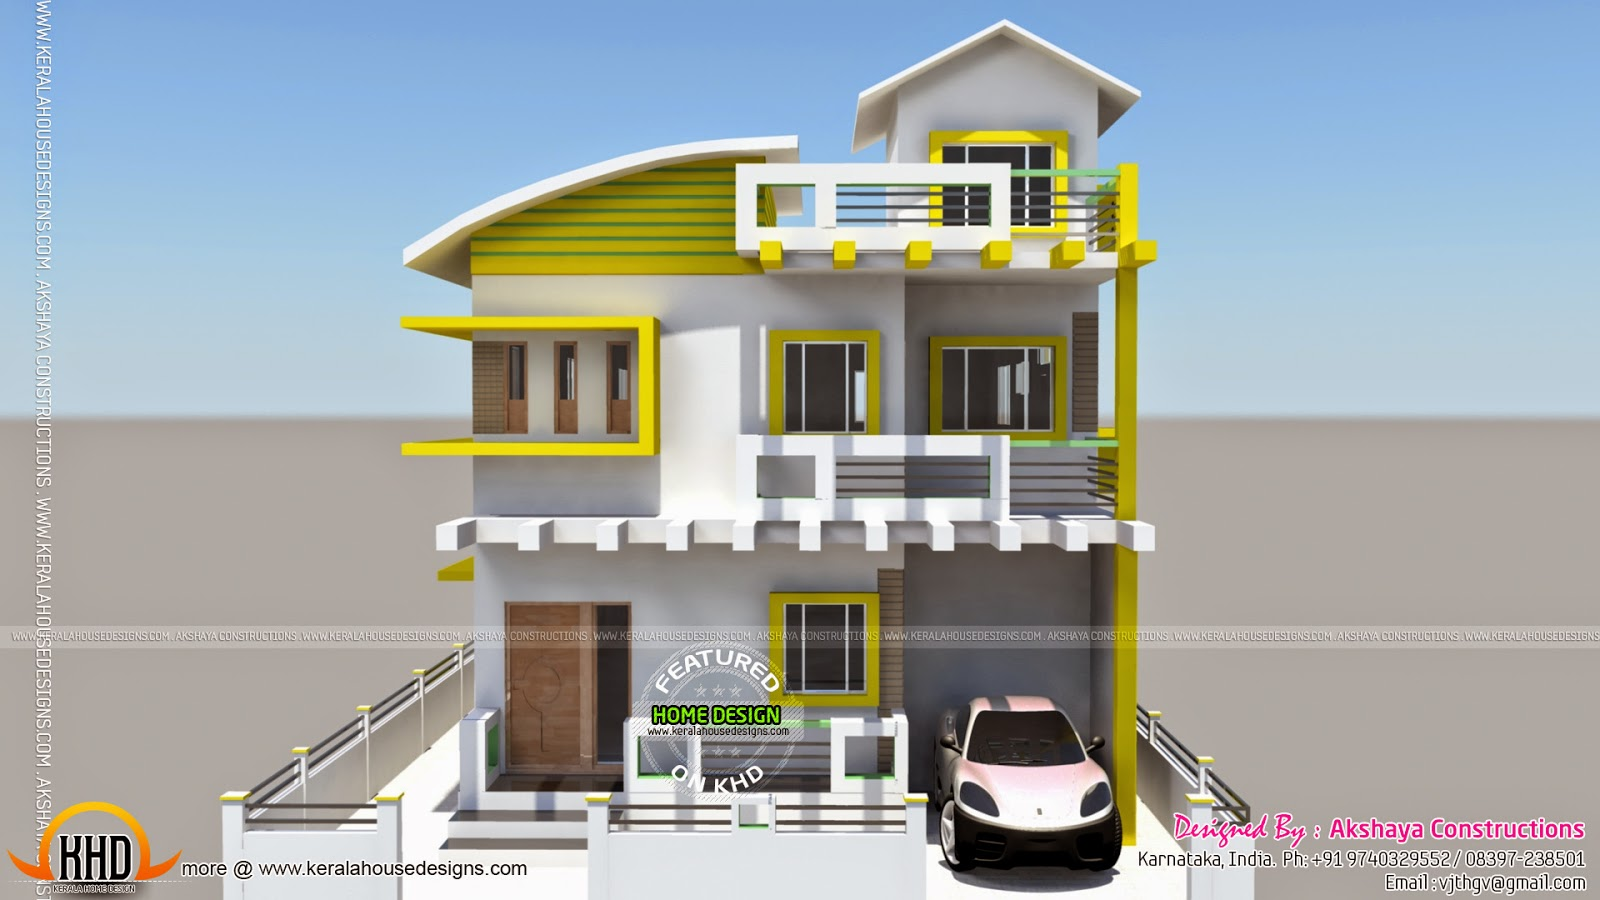 Karnataka home design kerala home design and floor plans for House plans and designs